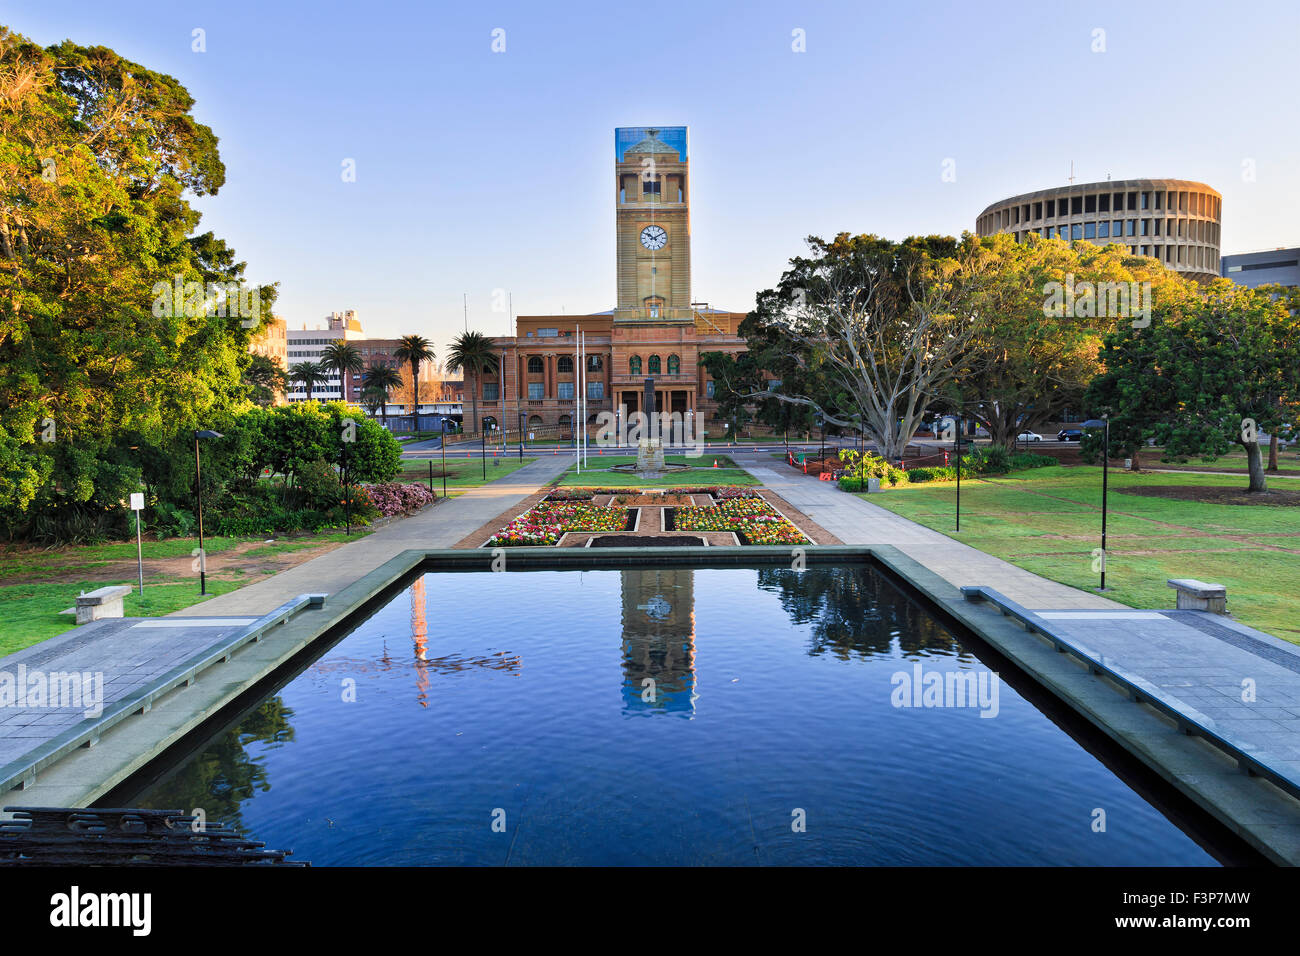 townhall of the city of Newcastle behind still pool in a park decorated by blooming flowers at sunrise - Stock Image